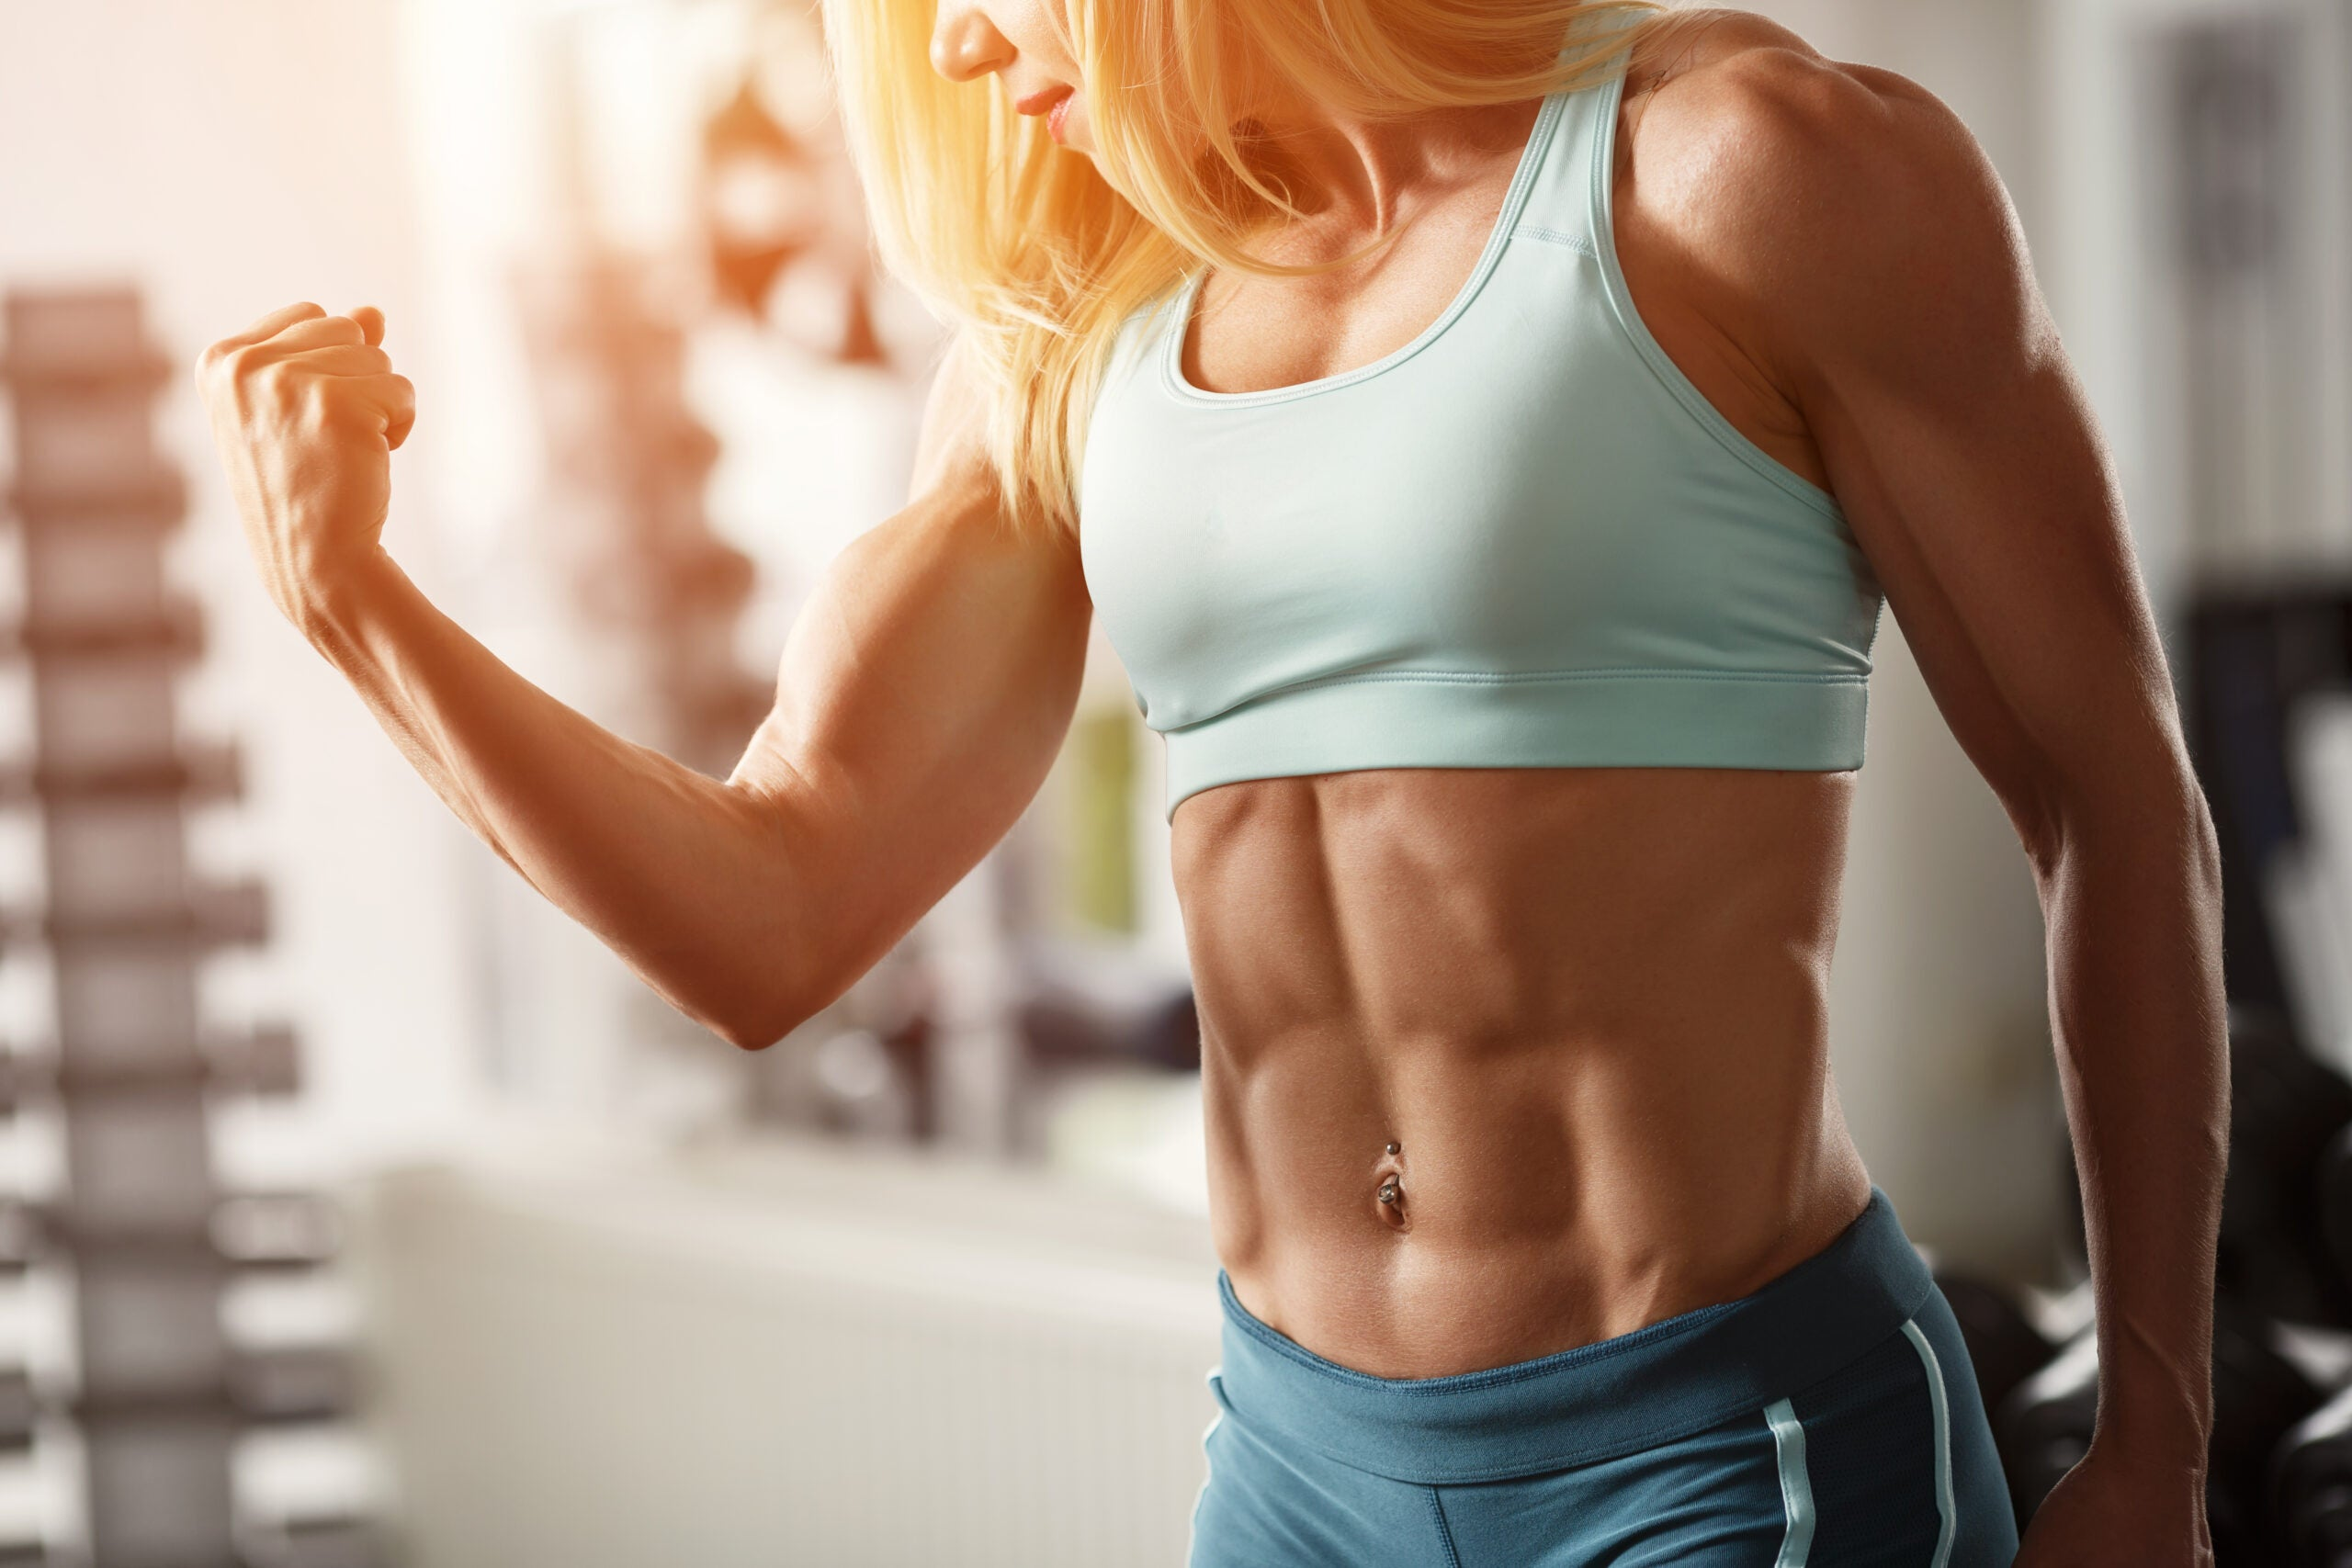 a blond woman with lots of muscles flexes for the camera